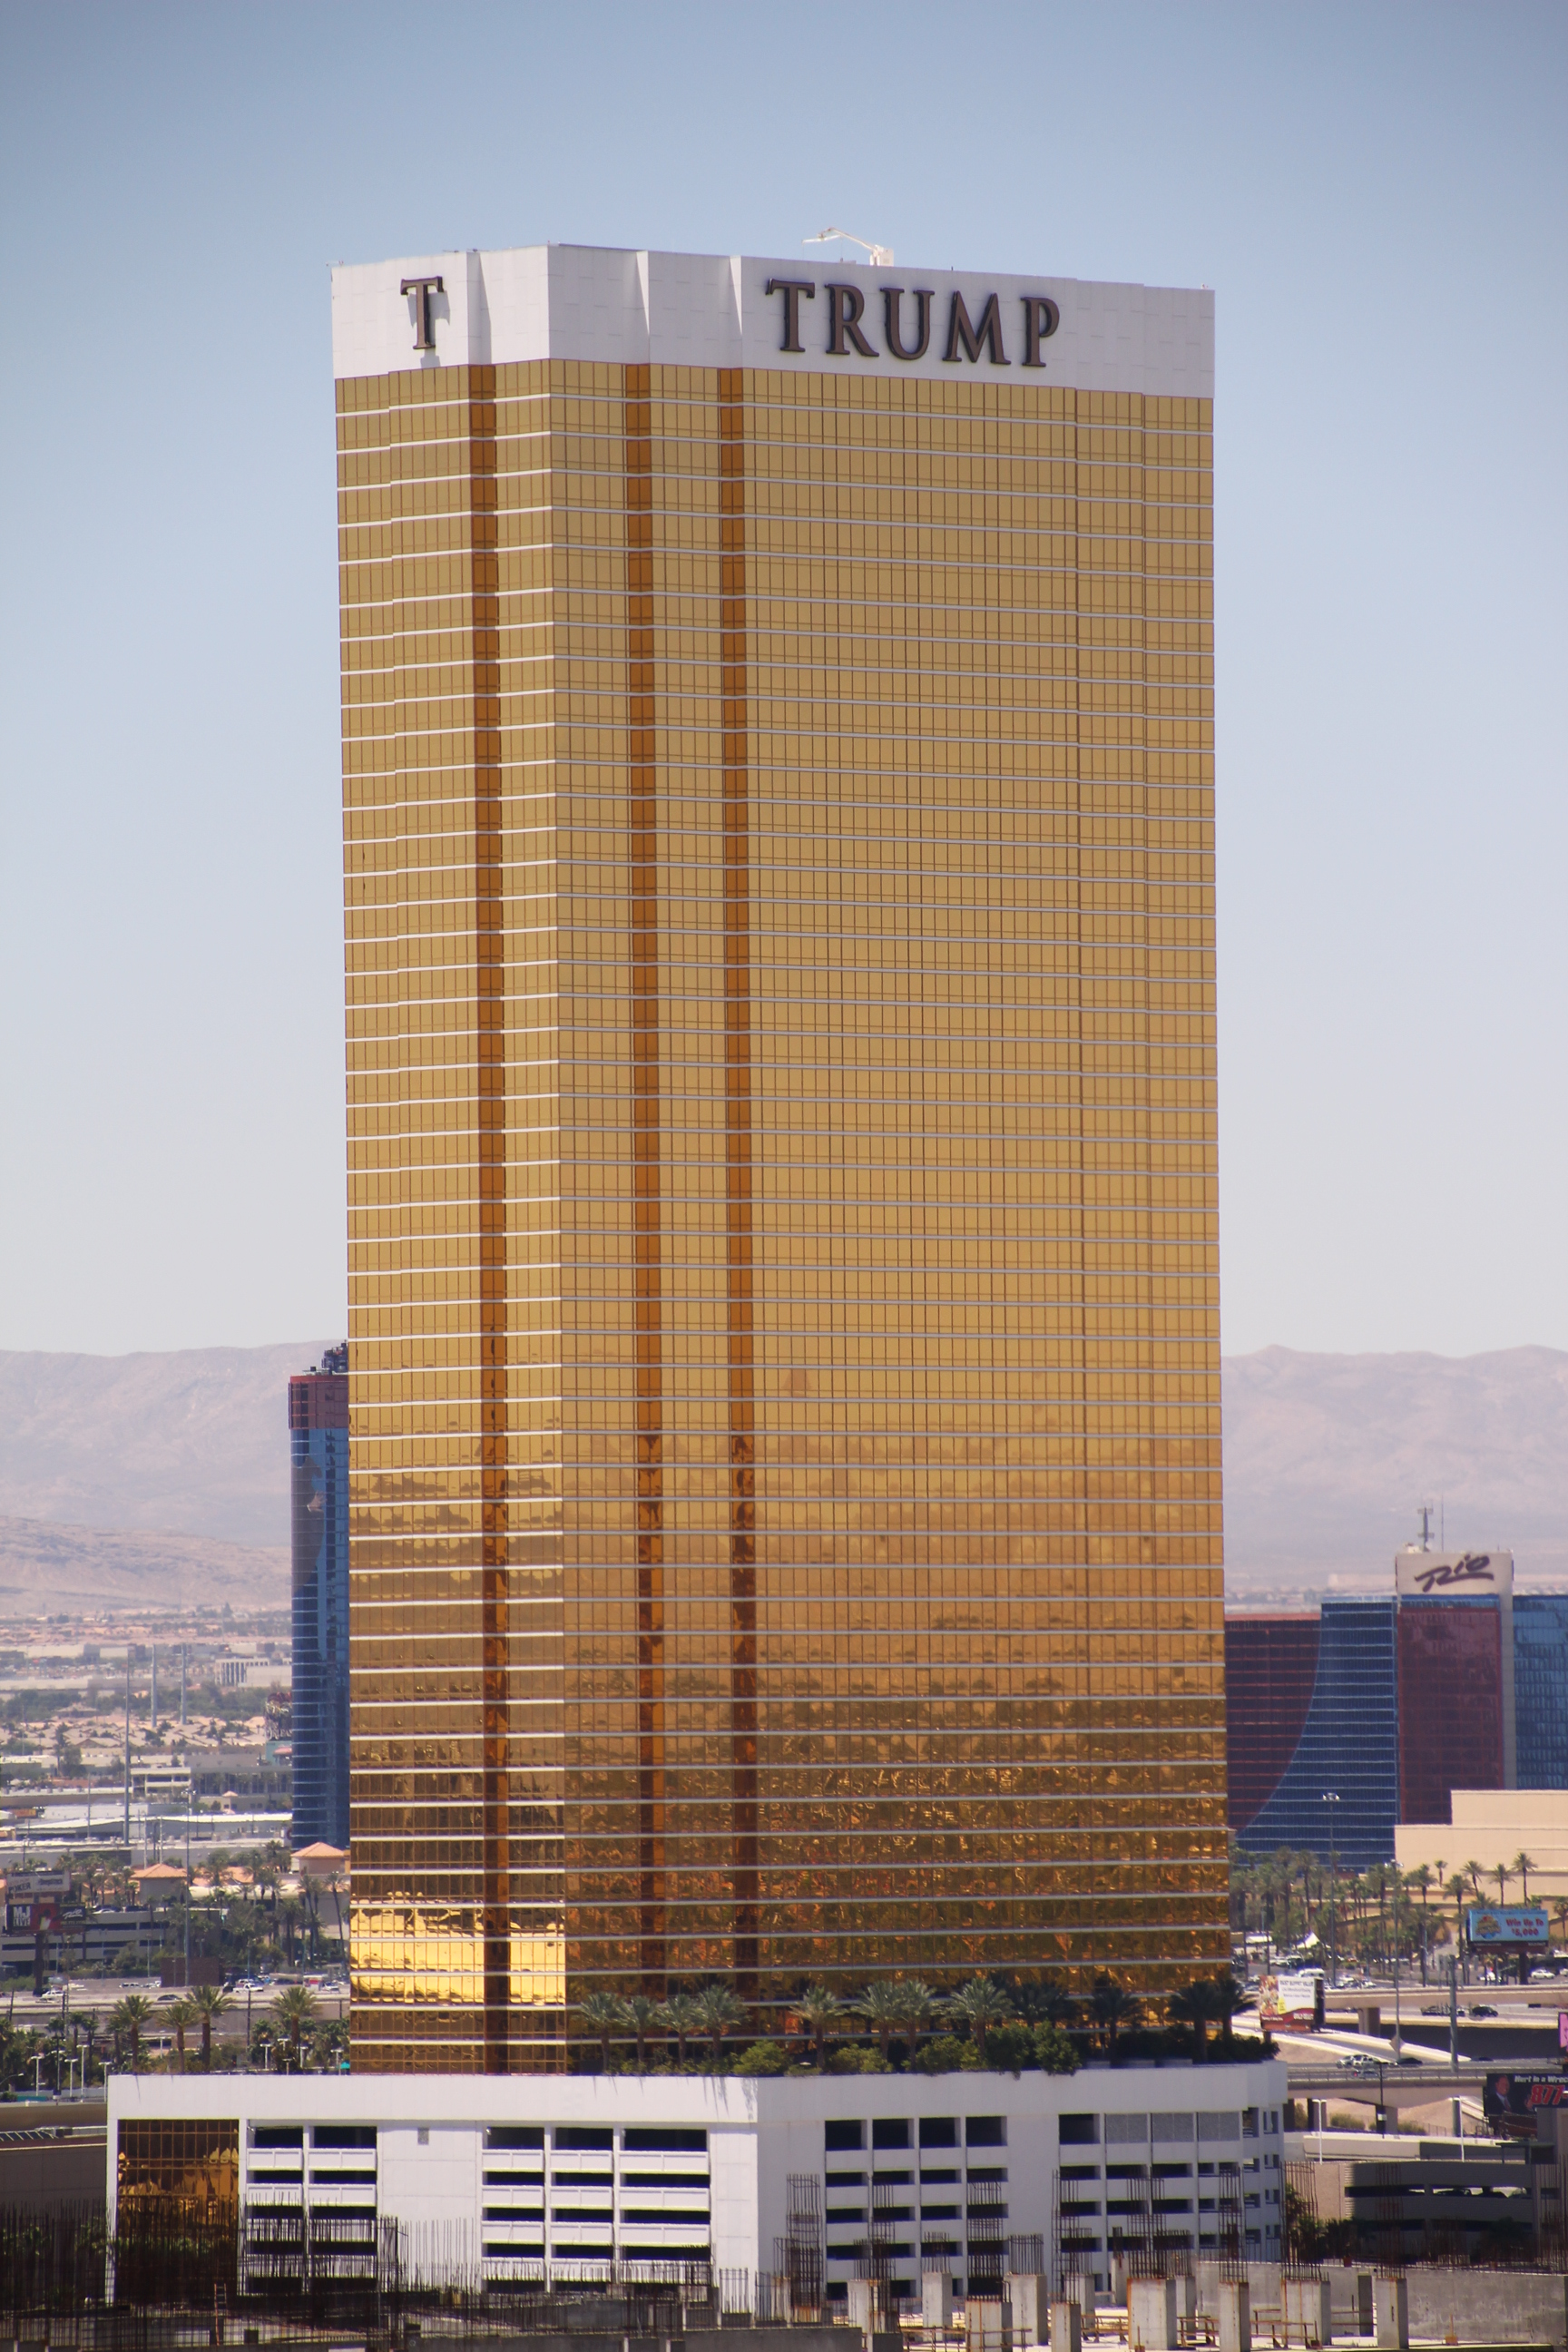 File:Las-Vegas-Trump-Hotel-7776.jpg - Wikimedia Commons